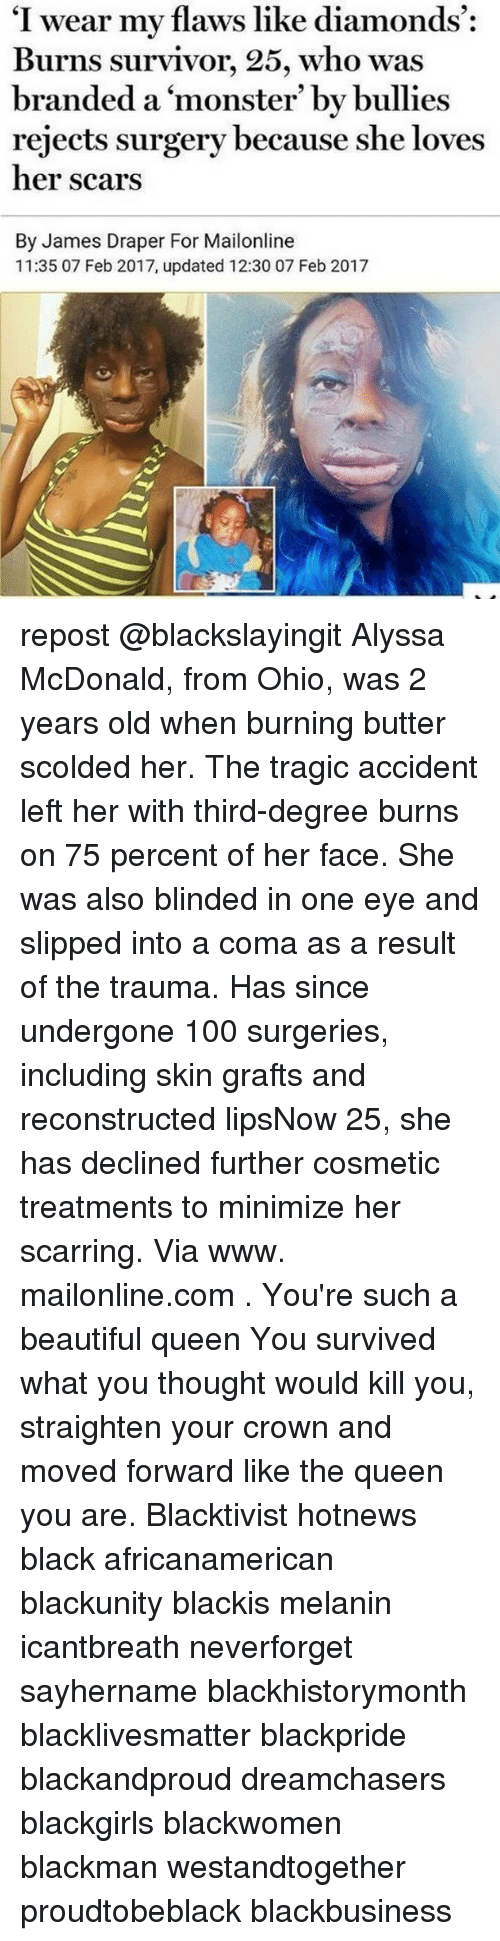 """Beautiful, McDonalds, and Memes: """"I wear my flaws like diamonds  Burns survivor, 25, who was  branded a monster' by bullies  rejects surgery because she loves  her scars  By James Draper For Mailonline  11:35 07 Feb 2017, updated 12:30 07 Feb 2017 repost @blackslayingit Alyssa McDonald, from Ohio, was 2 years old when burning butter scolded her. The tragic accident left her with third-degree burns on 75 percent of her face. She was also blinded in one eye and slipped into a coma as a result of the trauma. Has since undergone 100 surgeries, including skin grafts and reconstructed lipsNow 25, she has declined further cosmetic treatments to minimize her scarring. Via www. mailonline.com . You're such a beautiful queen You survived what you thought would kill you, straighten your crown and moved forward like the queen you are. Blacktivist hotnews black africanamerican blackunity blackis melanin icantbreath neverforget sayhername blackhistorymonth blacklivesmatter blackpride blackandproud dreamchasers blackgirls blackwomen blackman westandtogether proudtobeblack blackbusiness"""